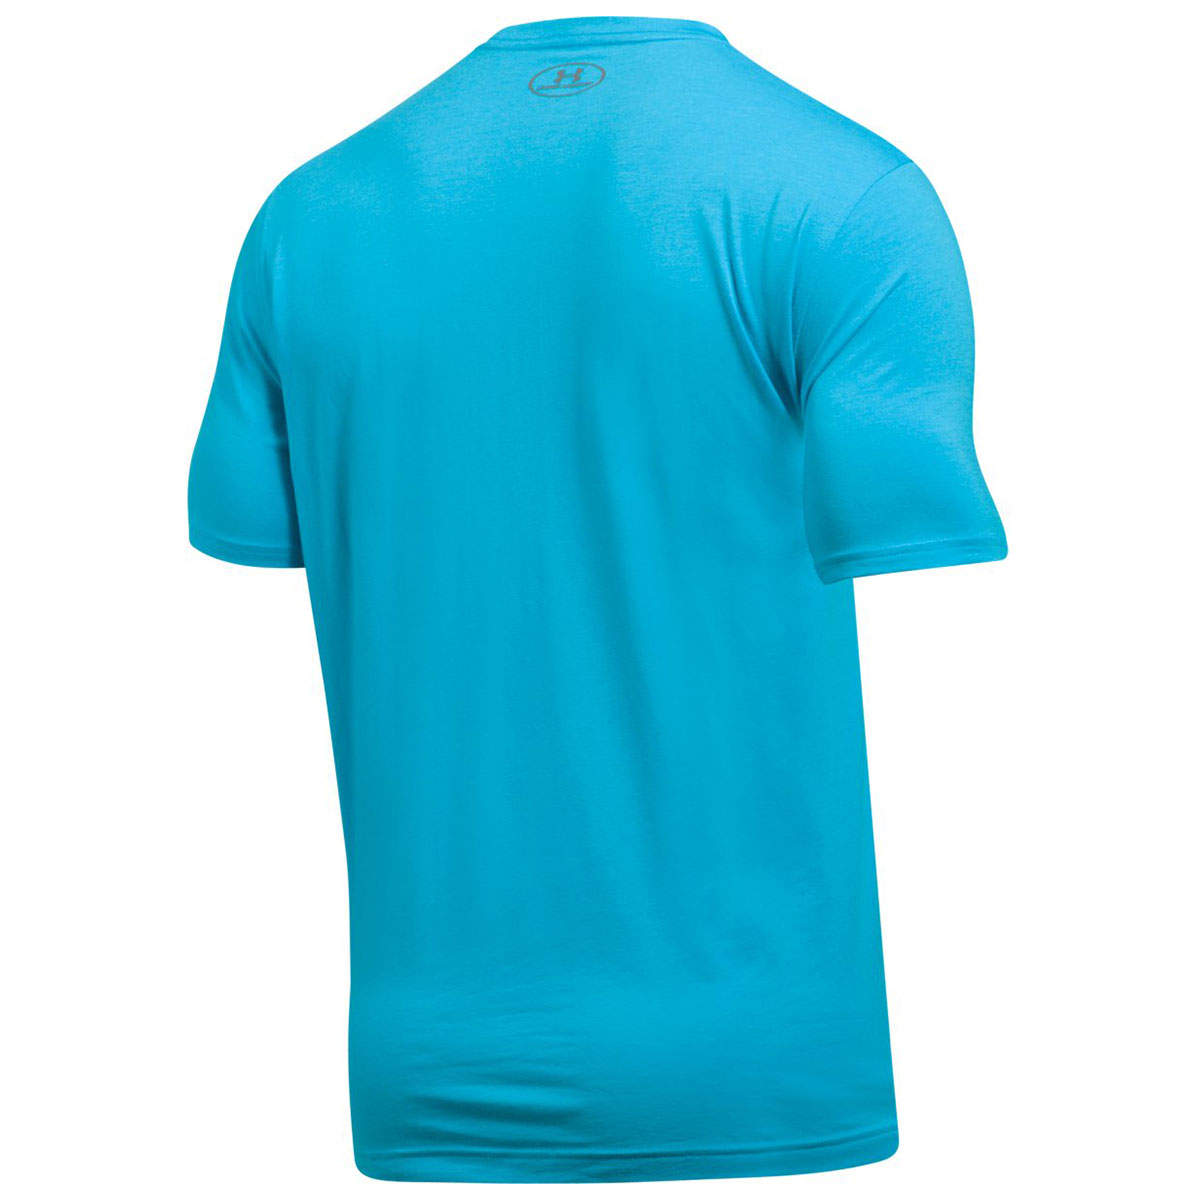 Under-Armour-Mens-Charged-Cotton-Left-Chest-Lockup-T-Shirt-UA-Gym-Training thumbnail 19